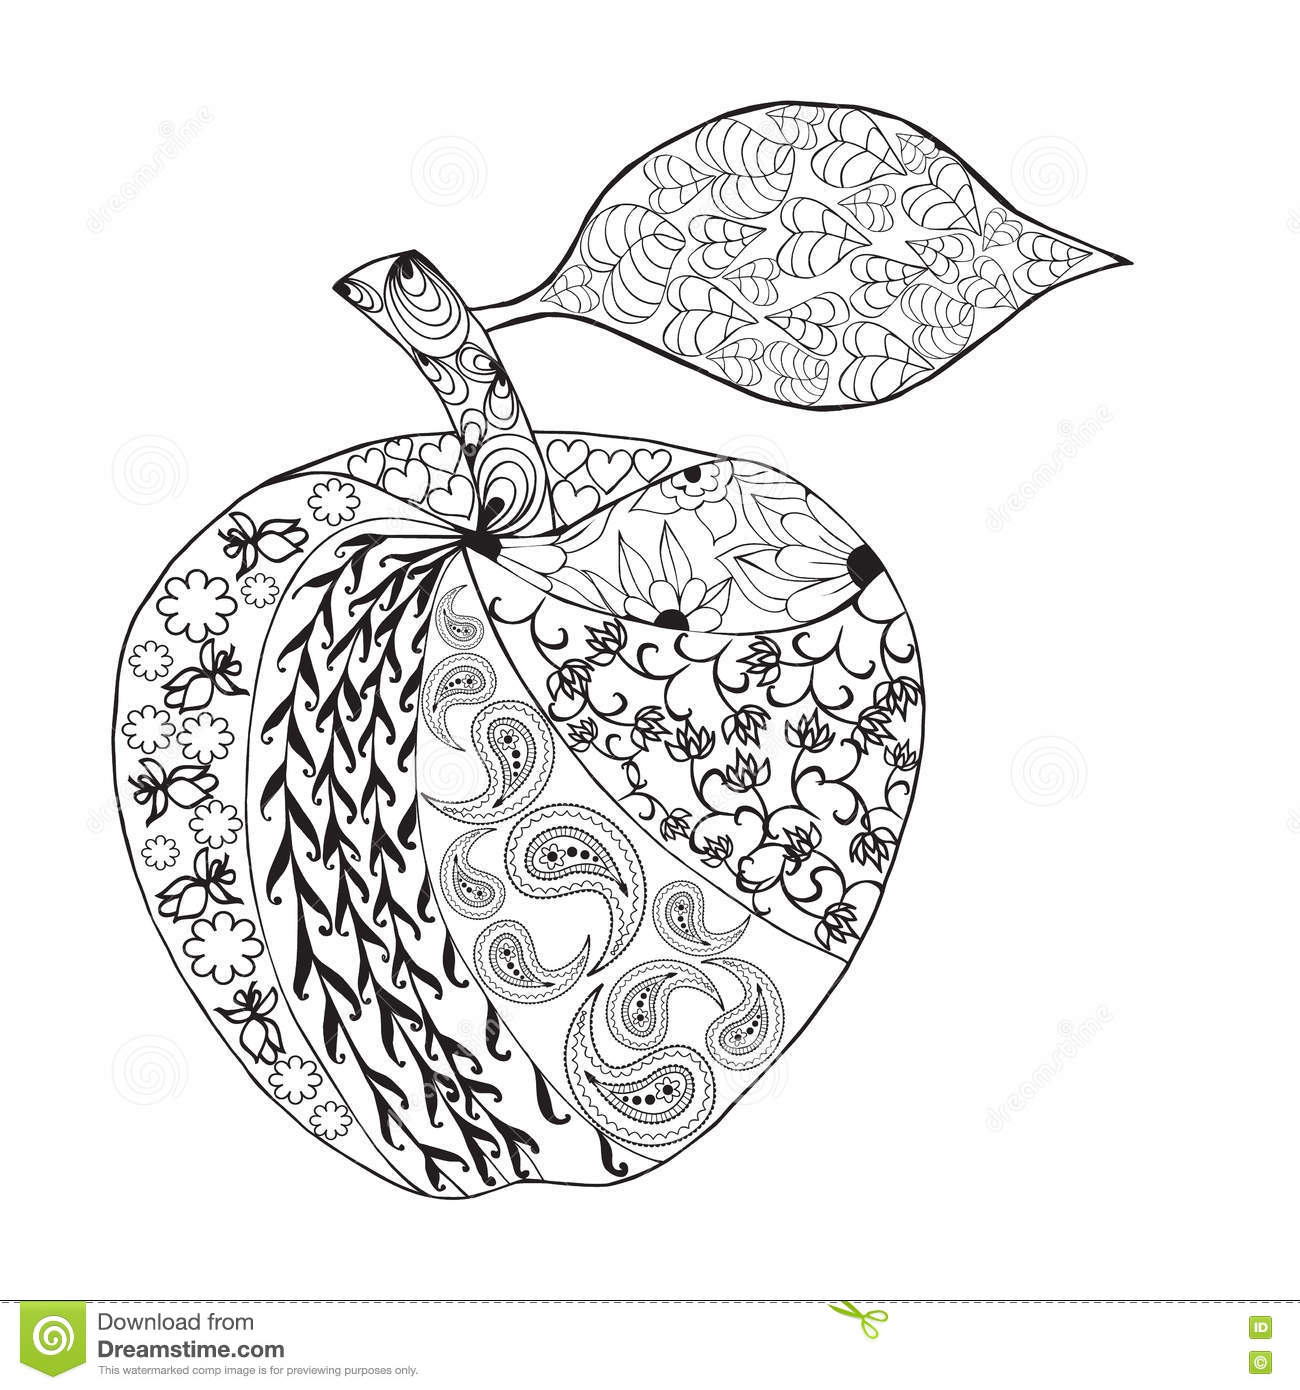 Style Monochrome De Zentangle D Apple De Vecteur Pour